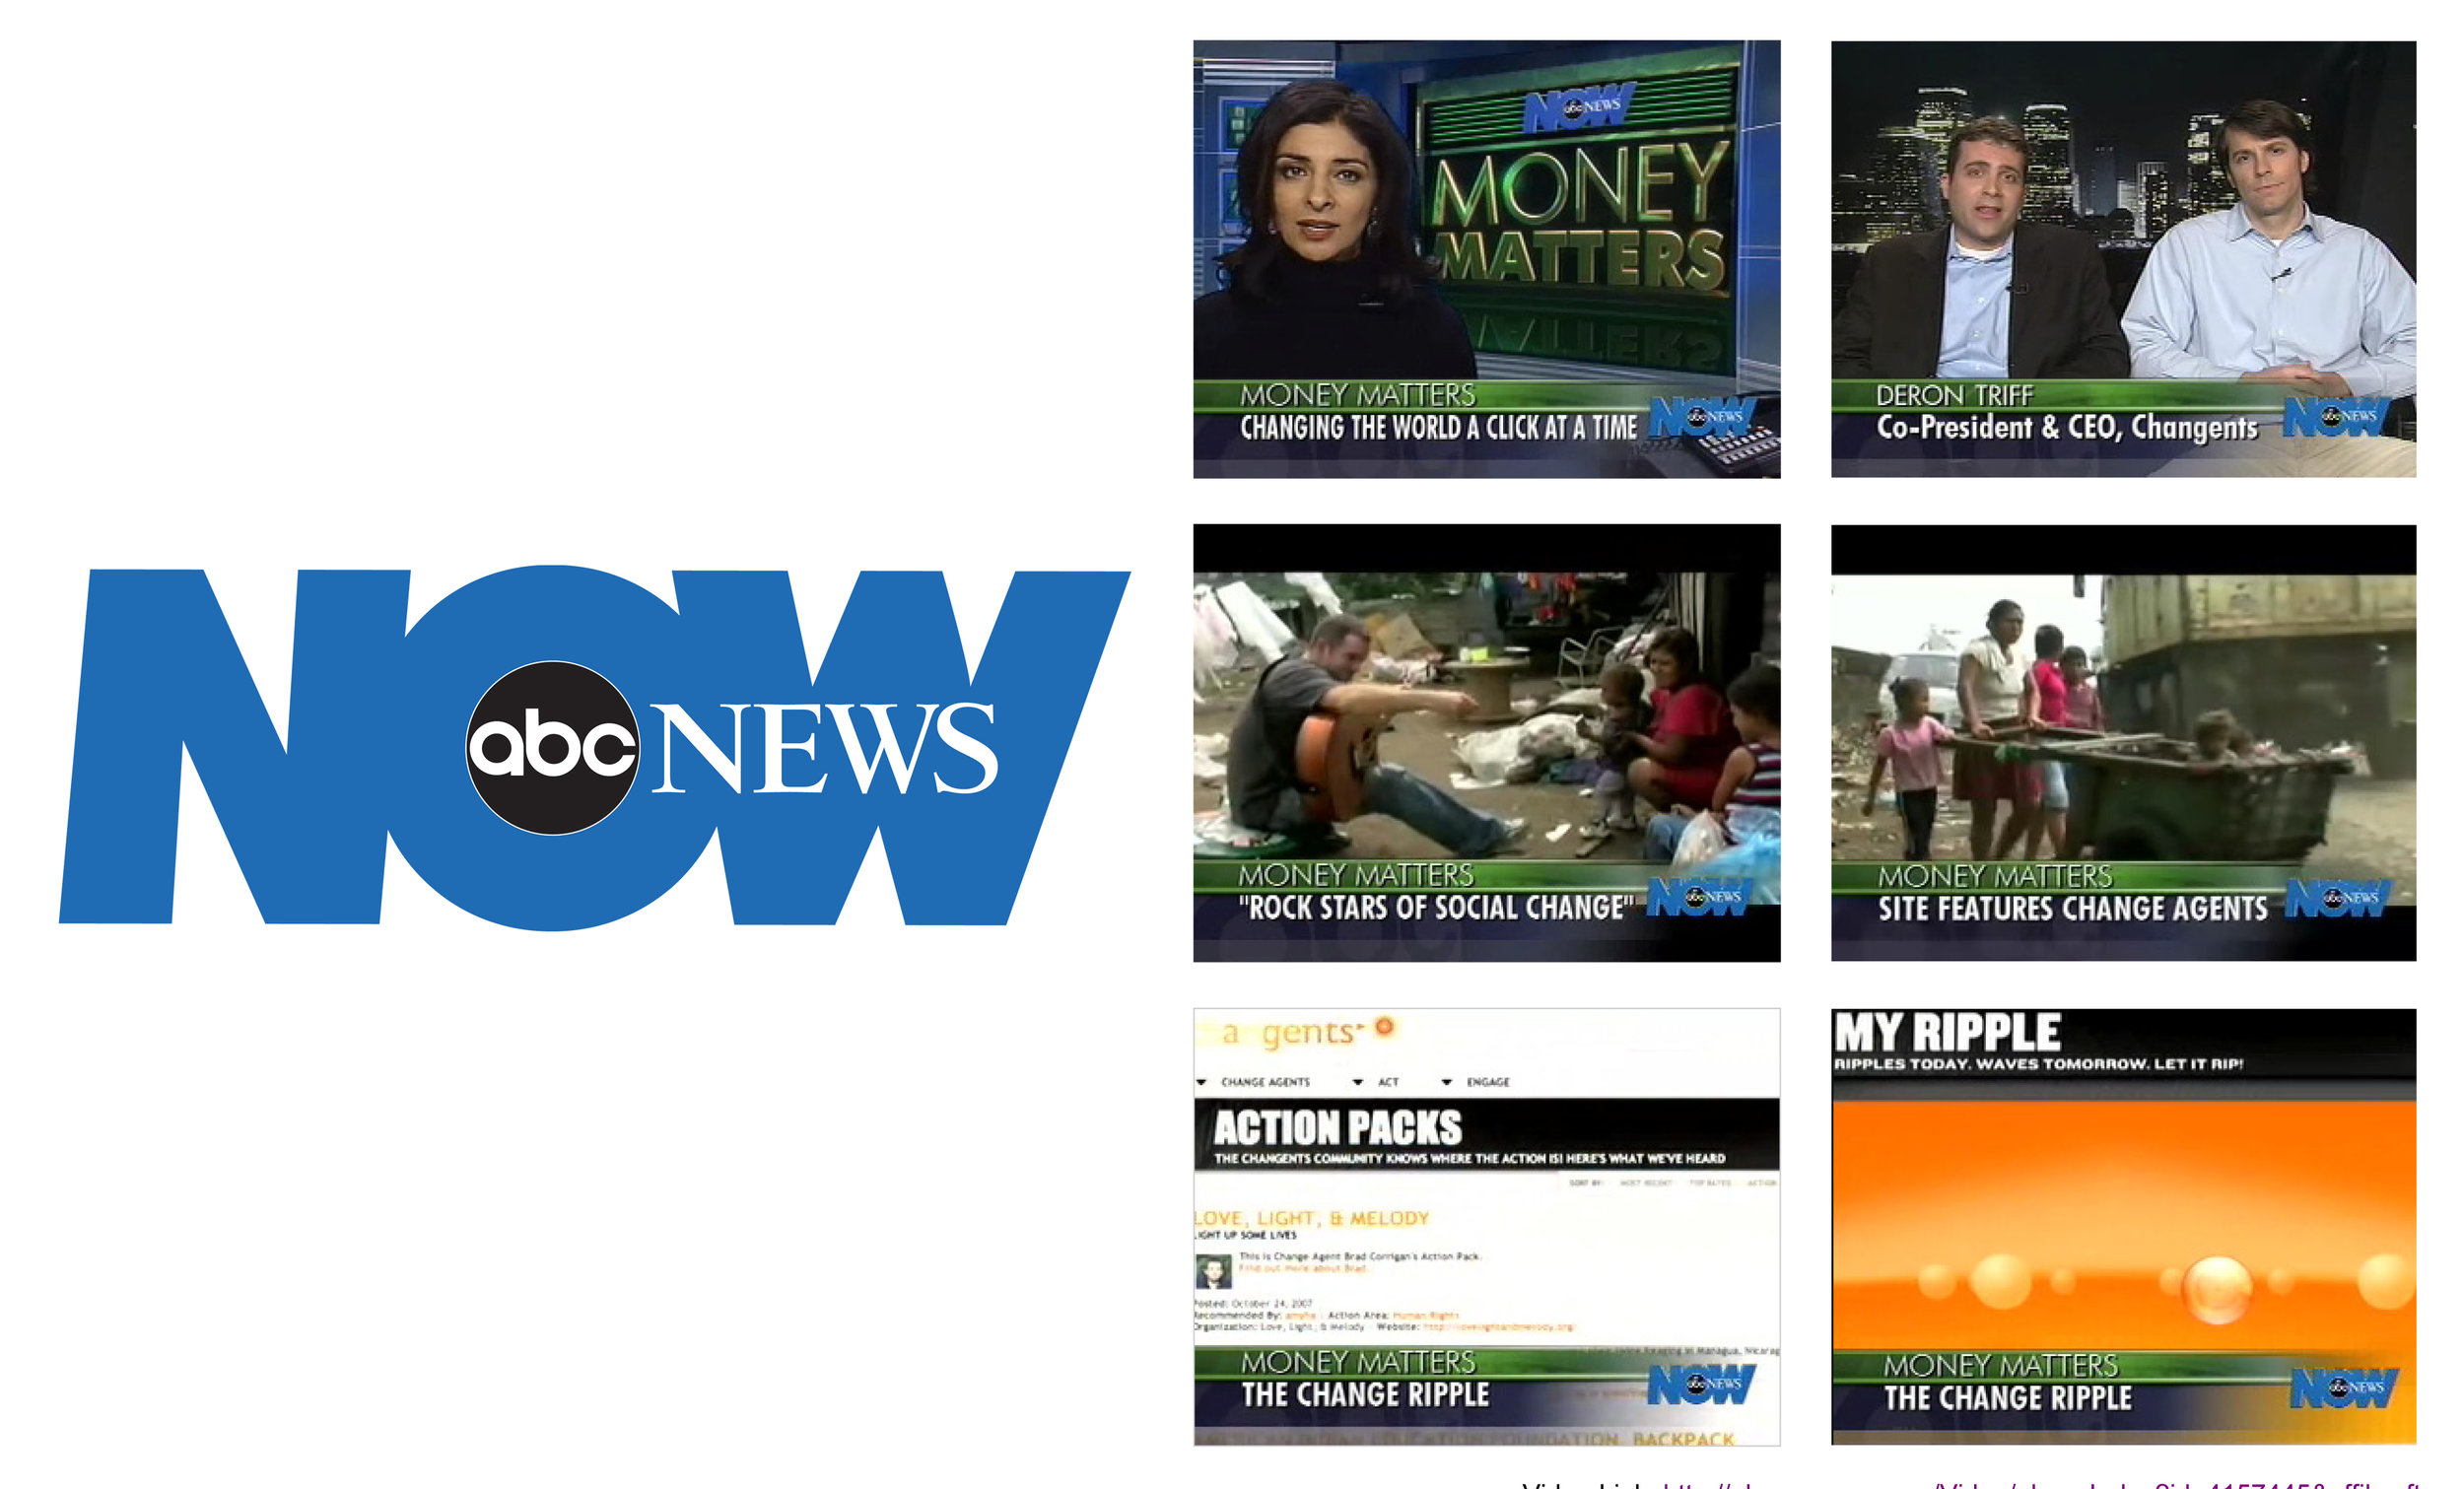 (ABC News Now) Money Matters_Changents